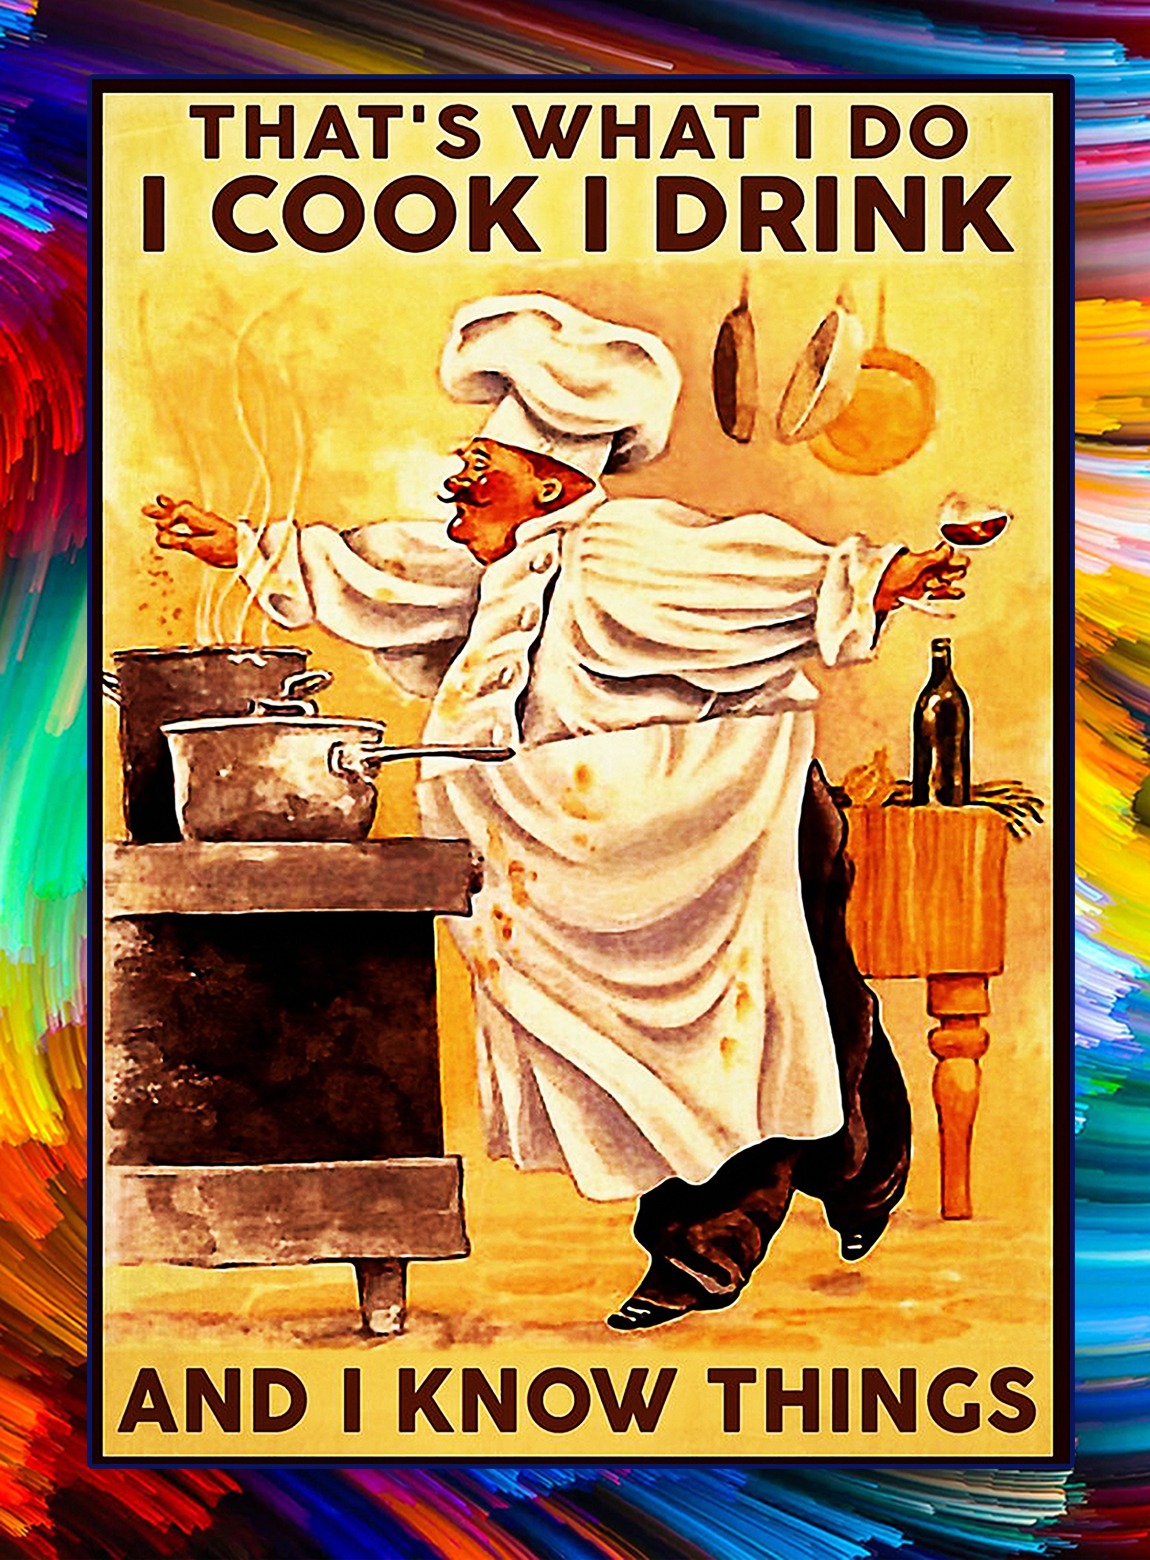 That's what i do i cook i drink and i know things chef poster - A2